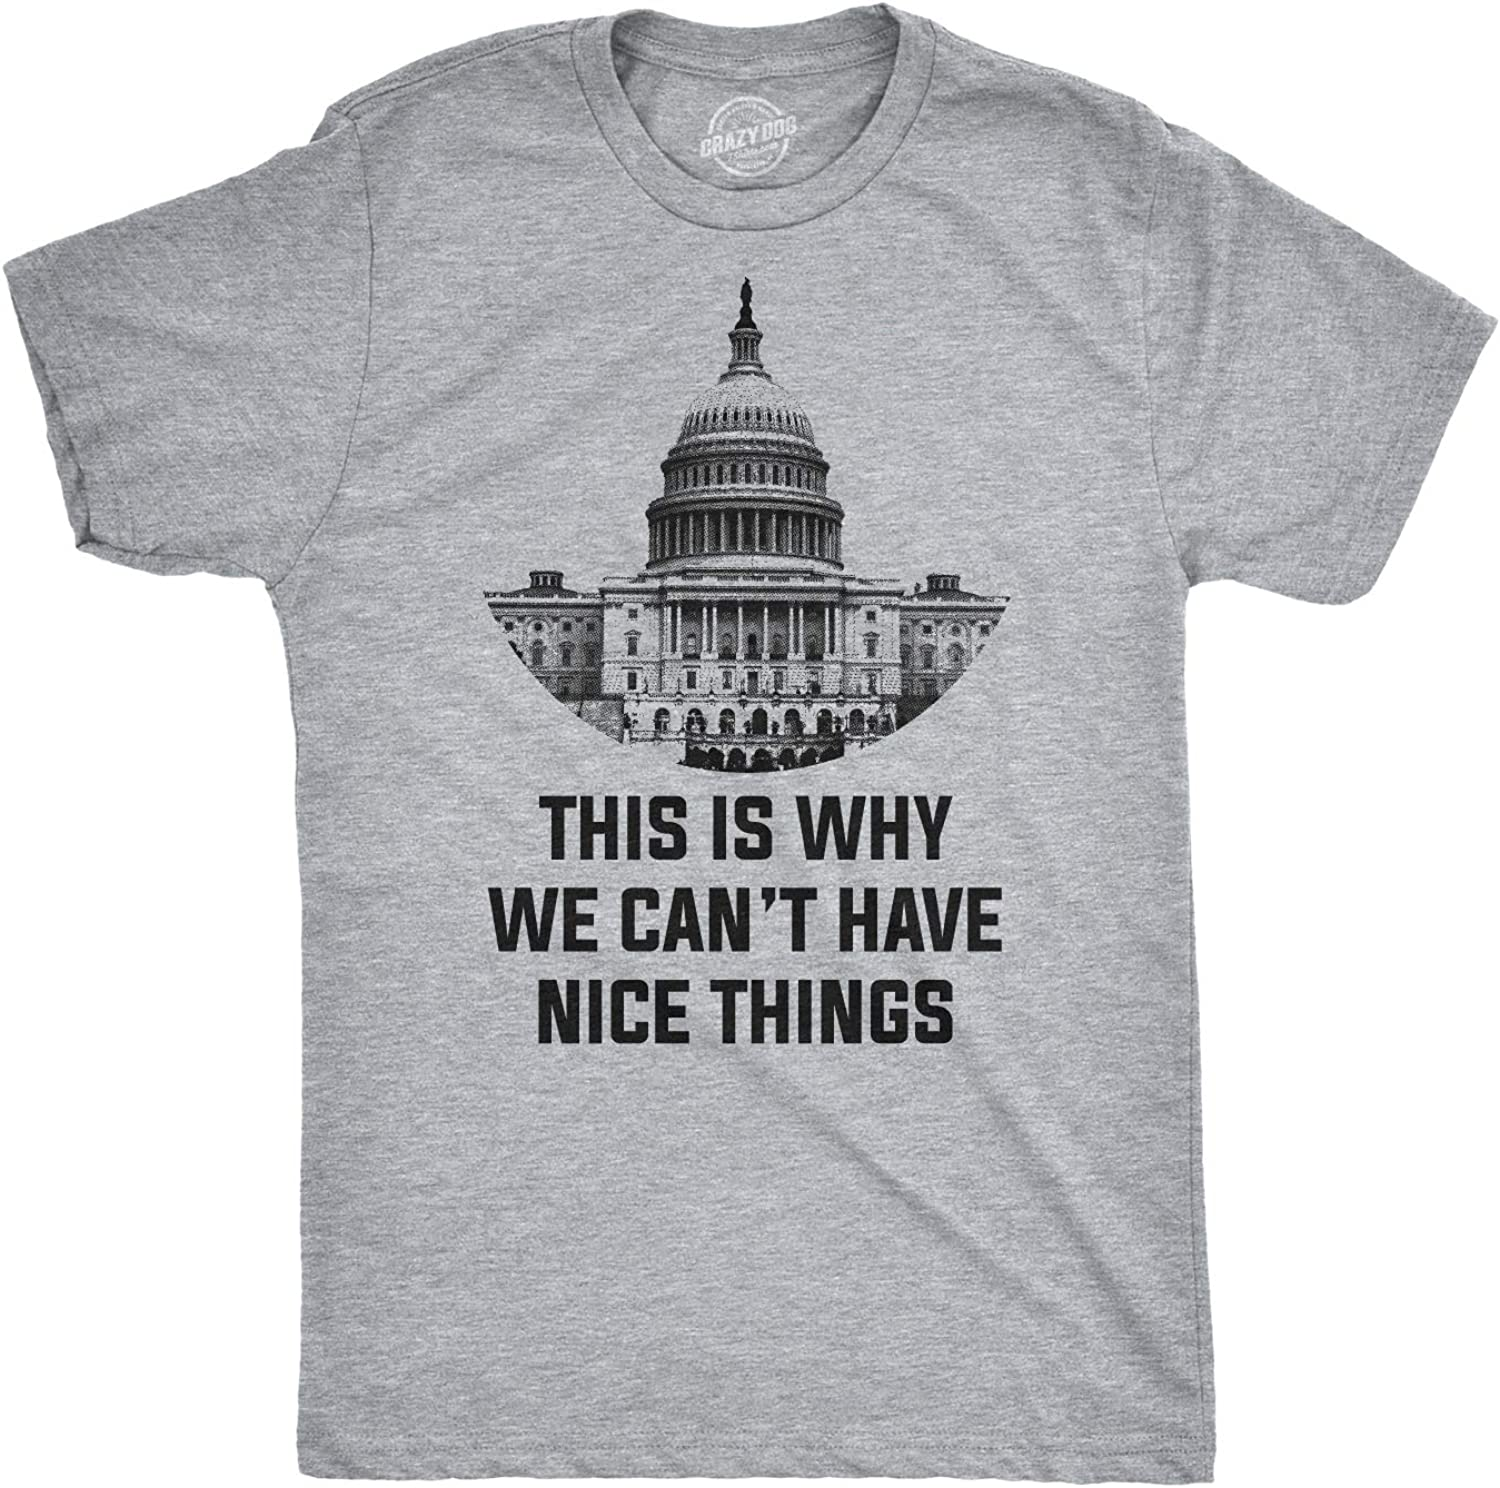 Crazy Dog T-Shirts This is Why We Can't Have Nice Things T Shirt Funny Anti Trump Political Tee